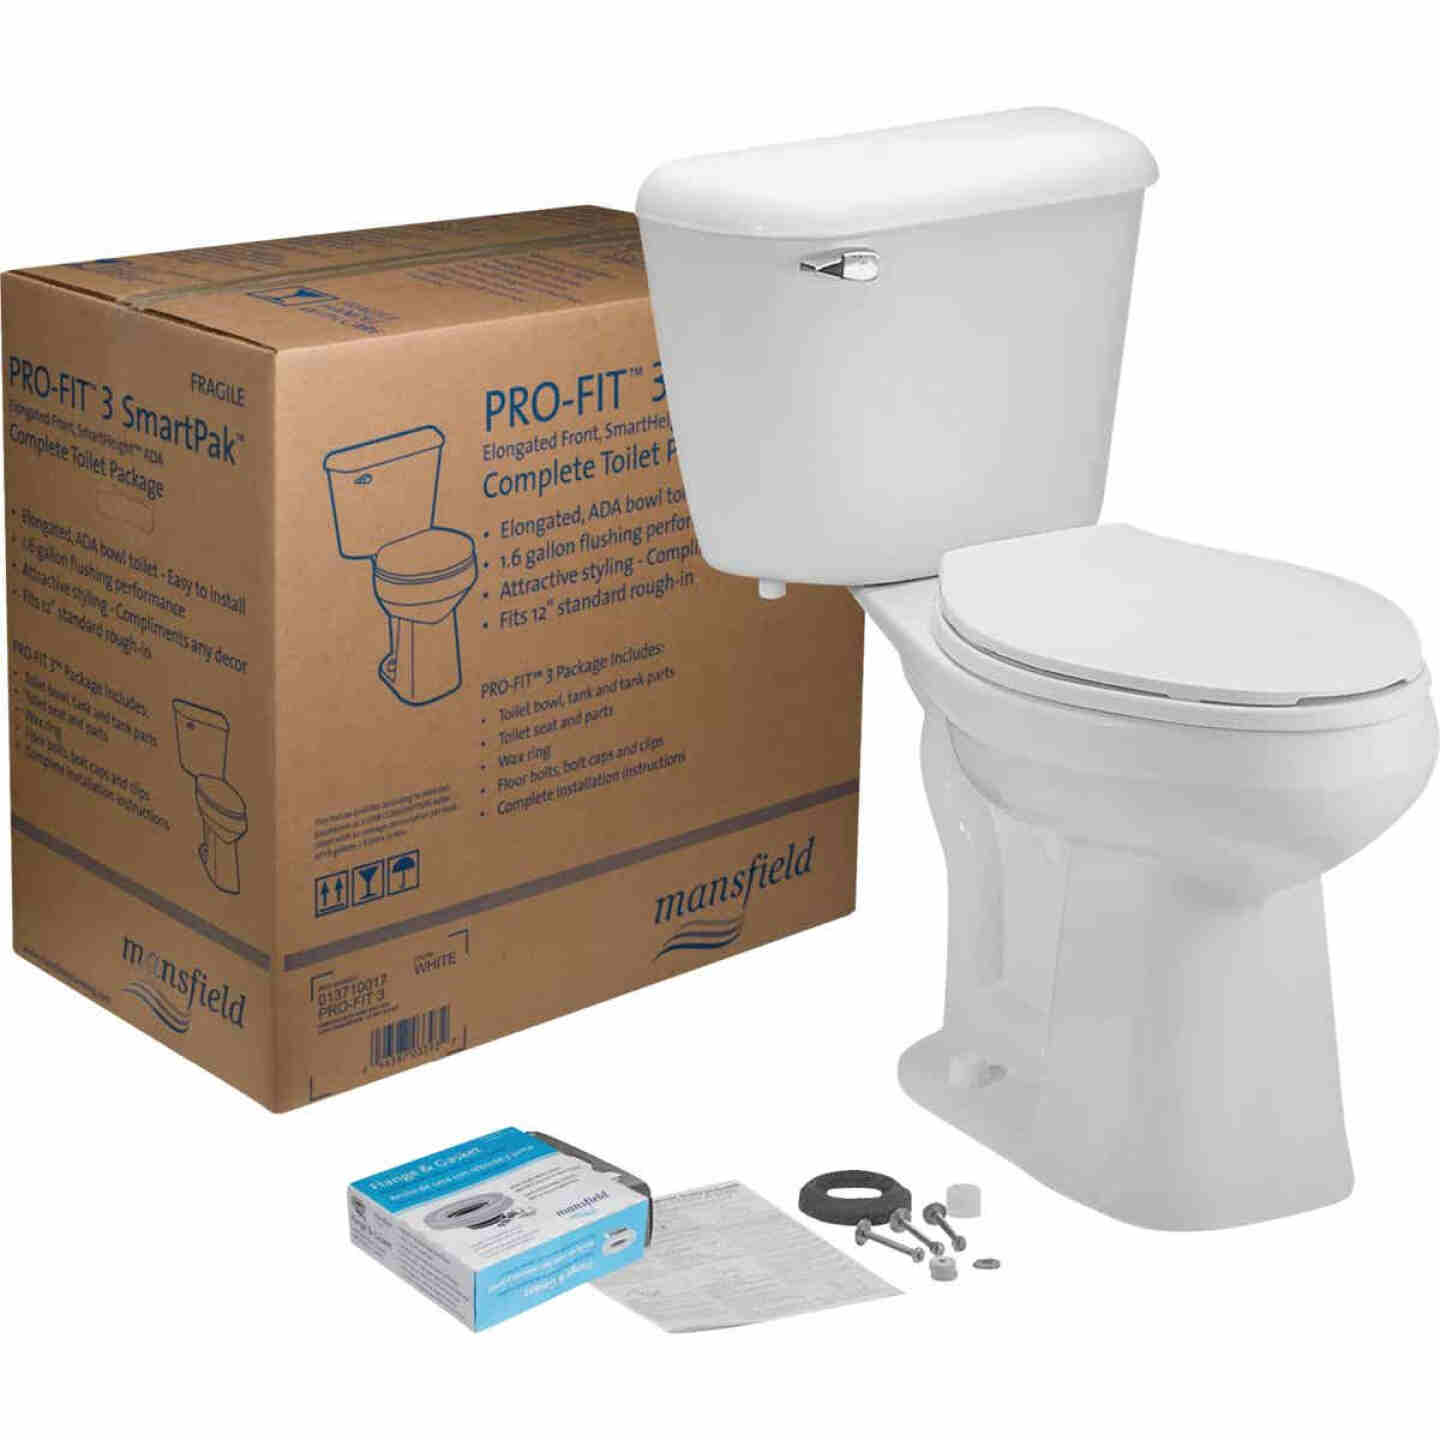 Mansfield Pro-Fit 3 SmartHeight White Elongated Bowl 1.6 GPF Complete Toilet Image 1